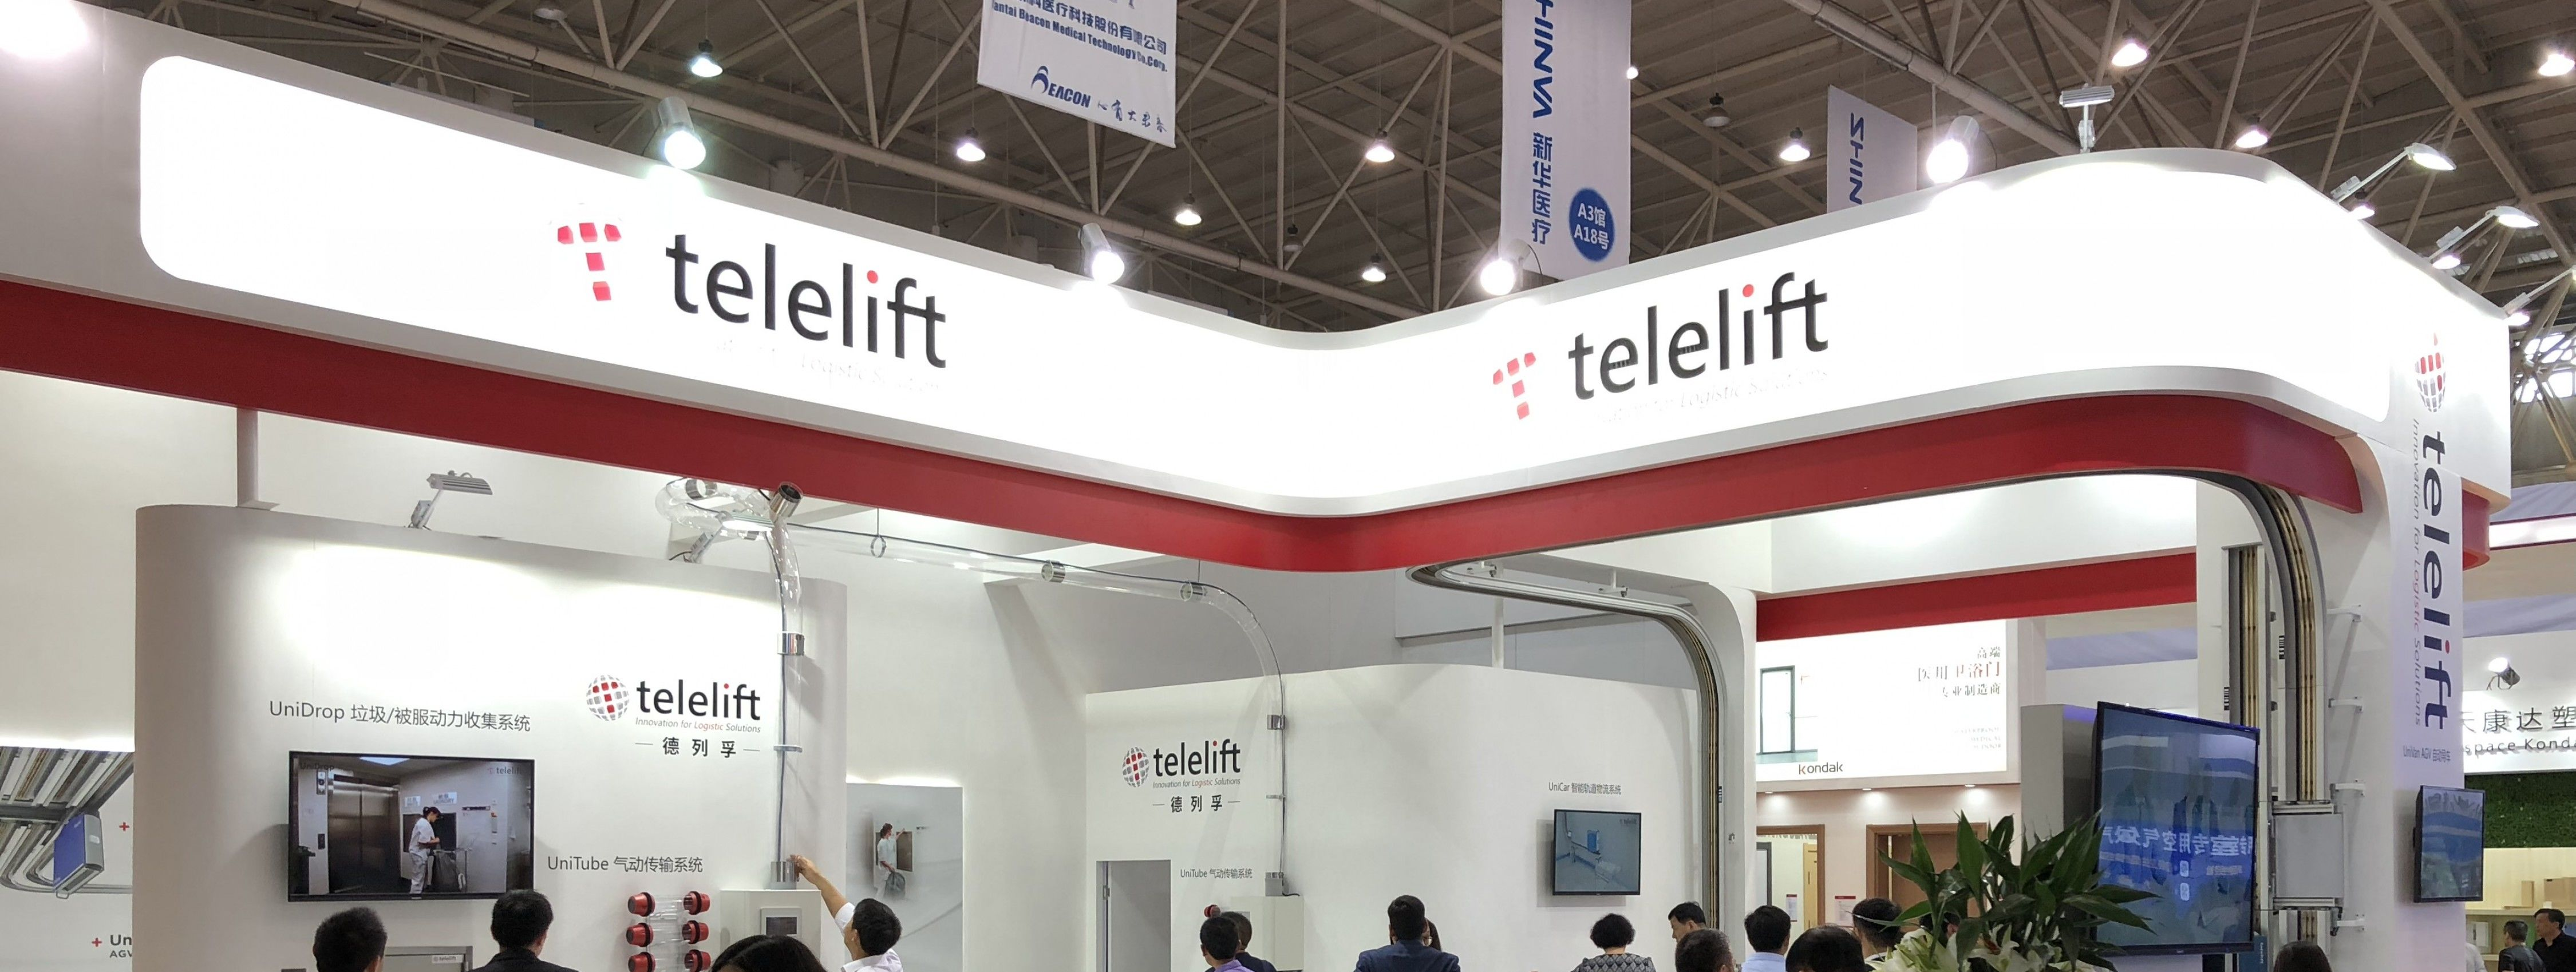 Telelift Events and Trade fairs